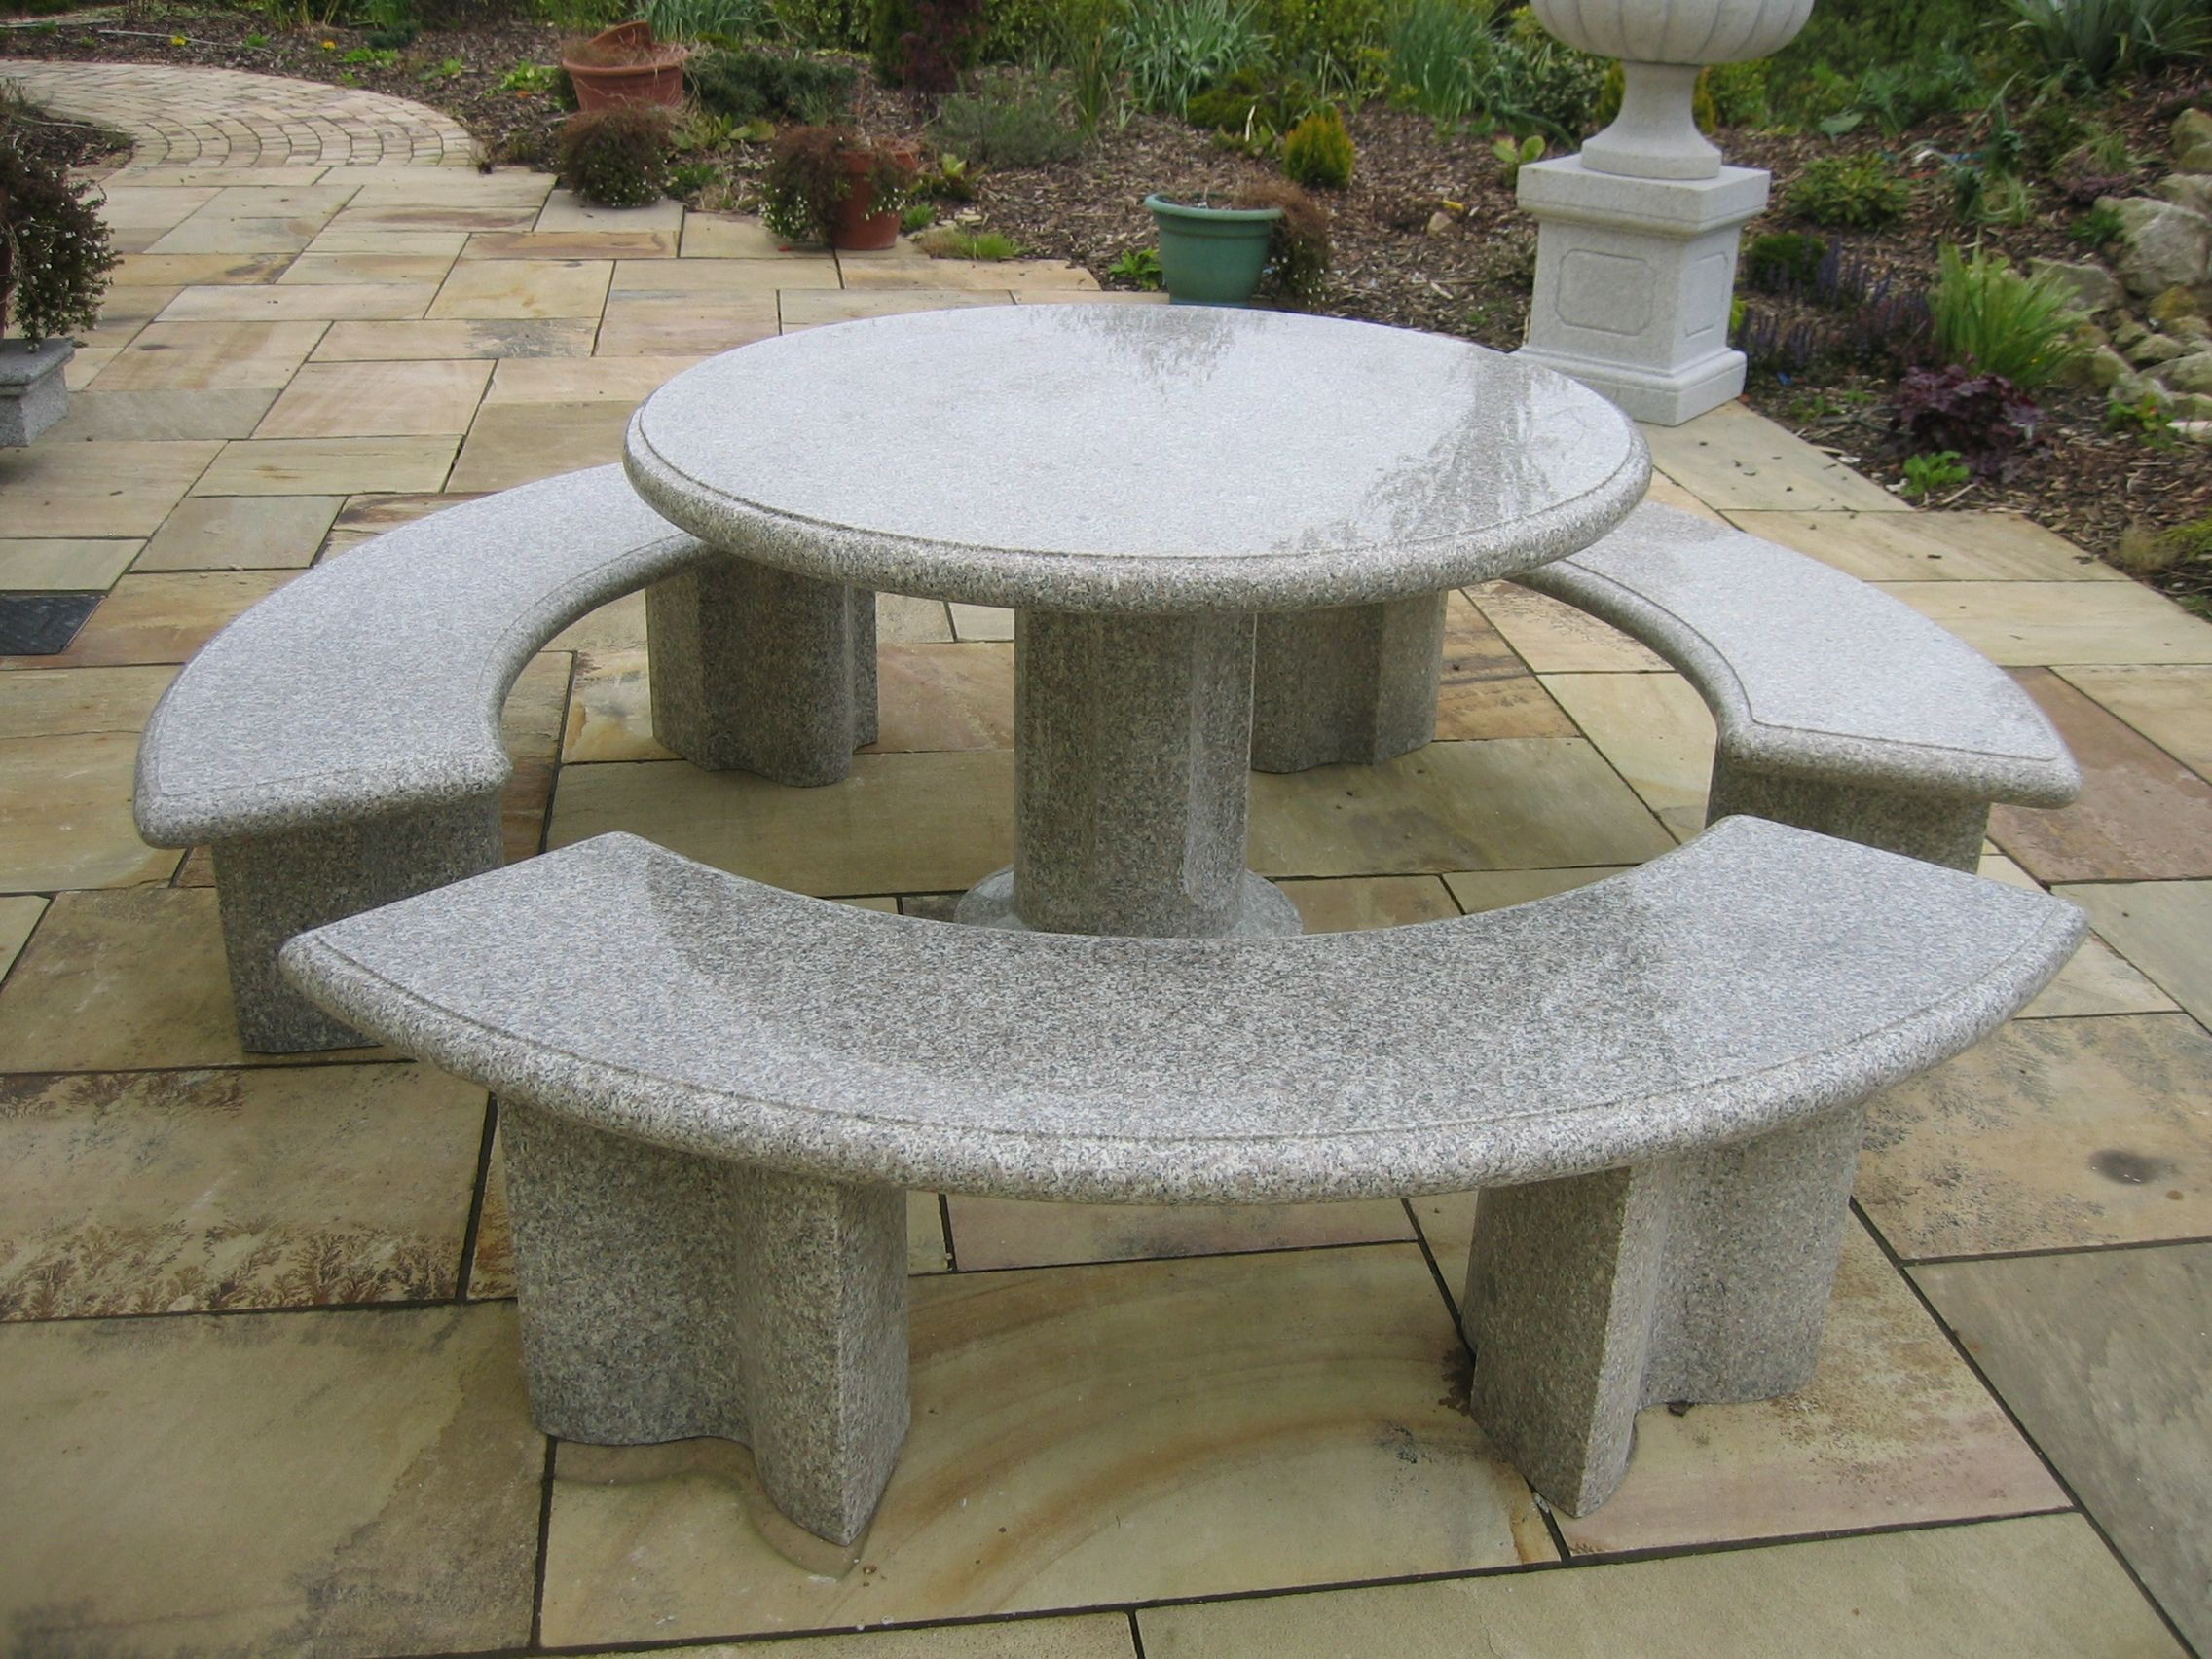 This Beautiful Polished Stone Round Table And Chairs A Perfect Focal Point For Any Patio Or Garden Granite Furniture Garden Table And Chairs Granite Table